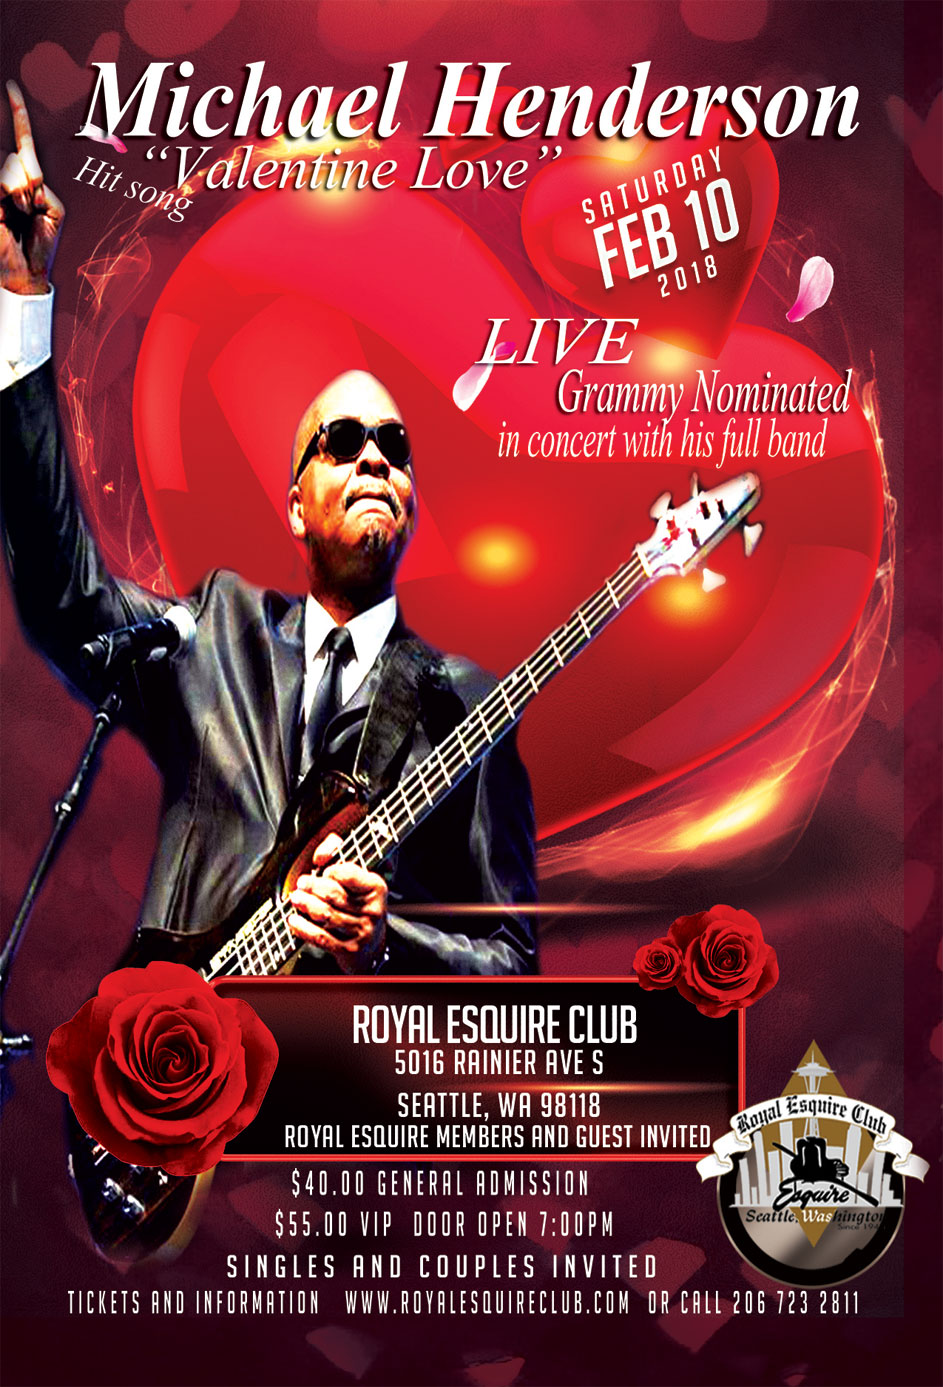 Michael Henderson with full live band Valentine Love concert – Royal